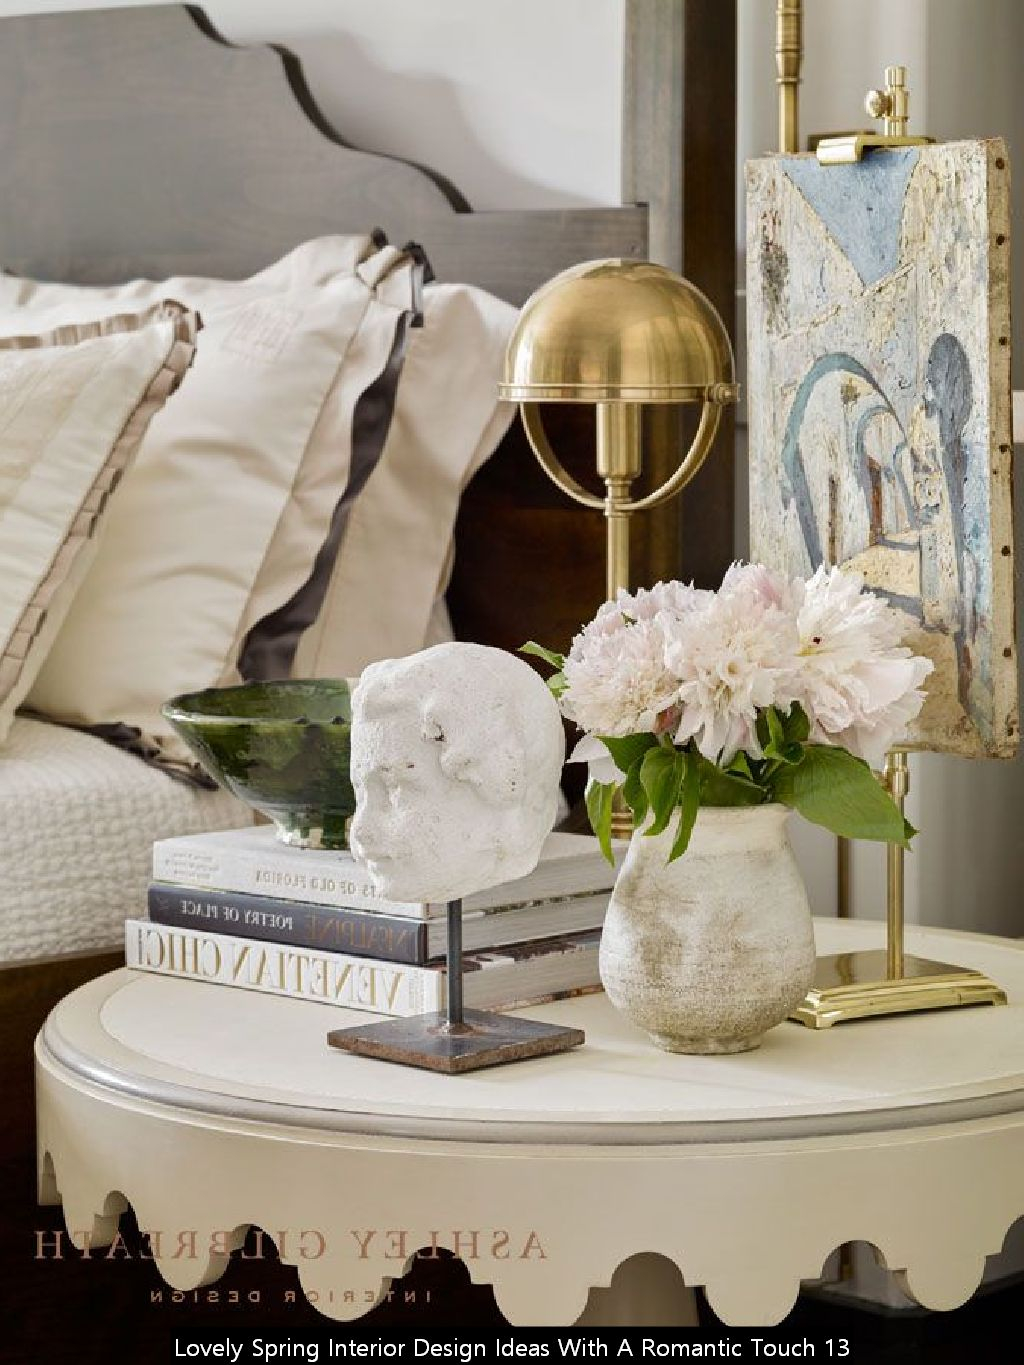 Lovely Spring Interior Design Ideas With A Romantic Touch 13